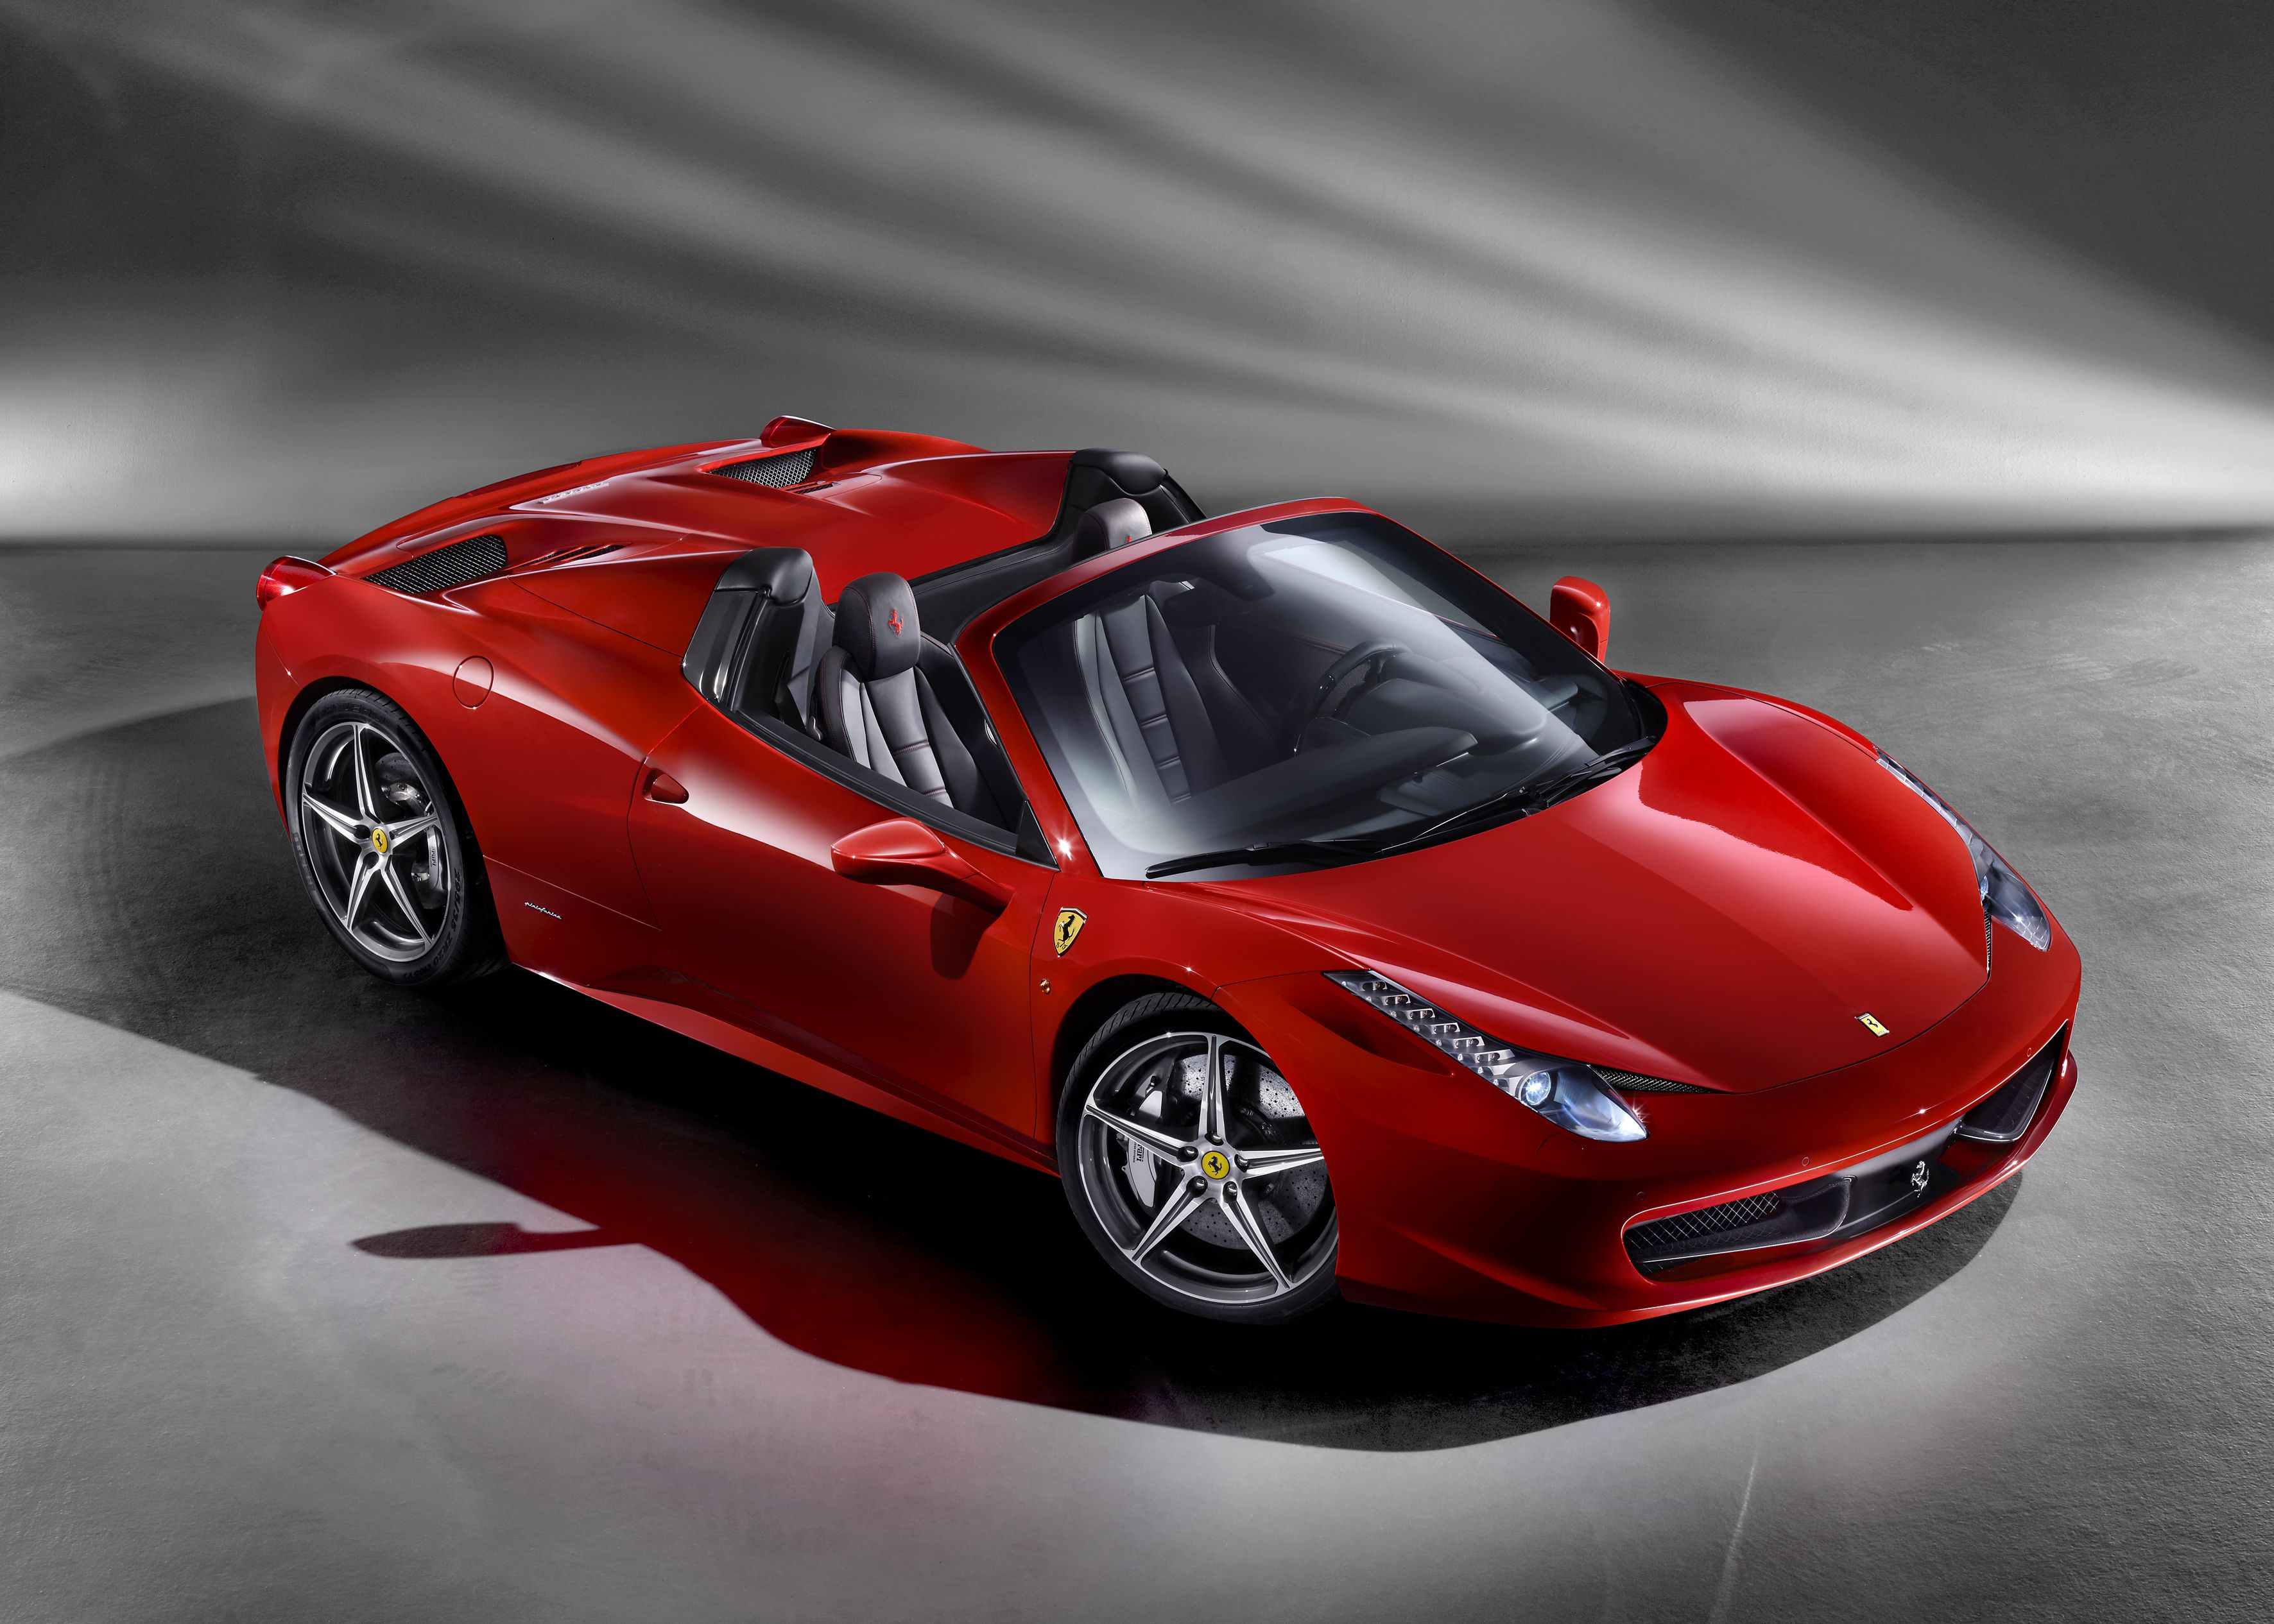 for sale of paris motor laferrari display aperta press cheap new produced first on by ahead show sells cars ferrari gettyimages sits day used automobile out the during